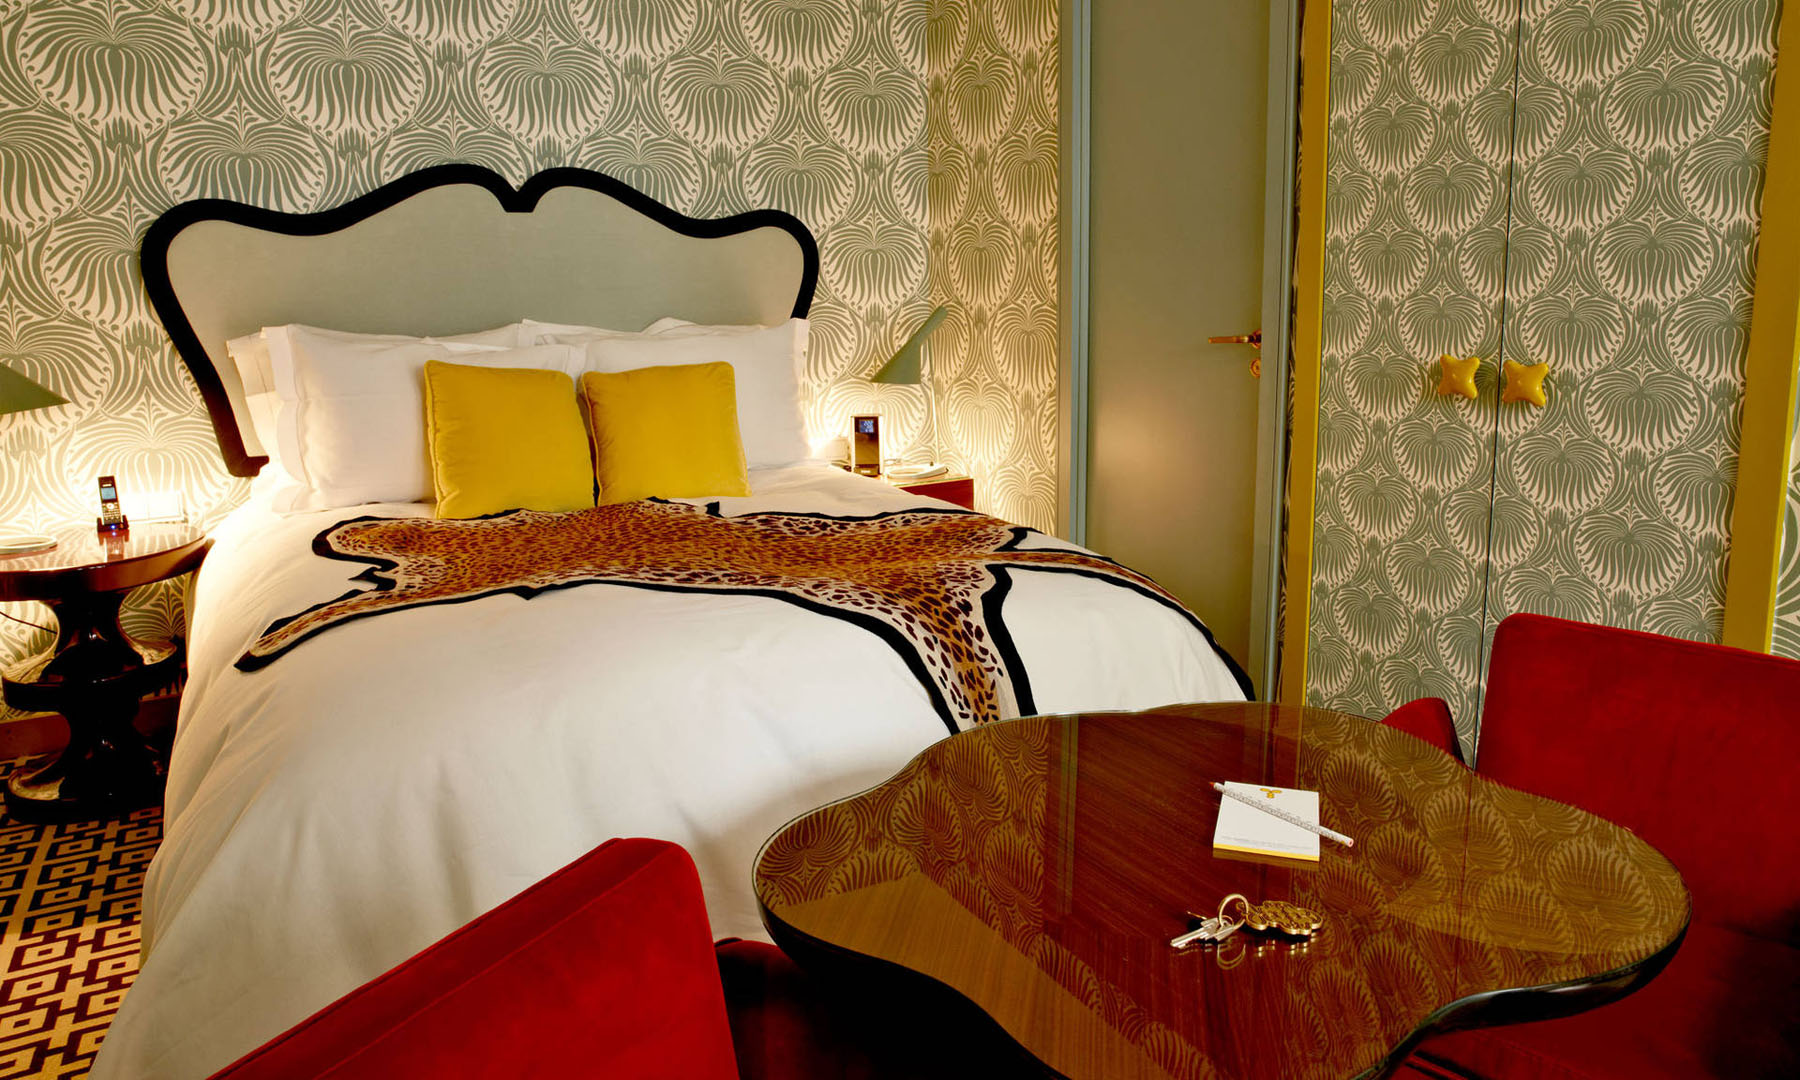 Boutique Deco Paris French Art Deco Interior Design By India Mahdavi At Hotel